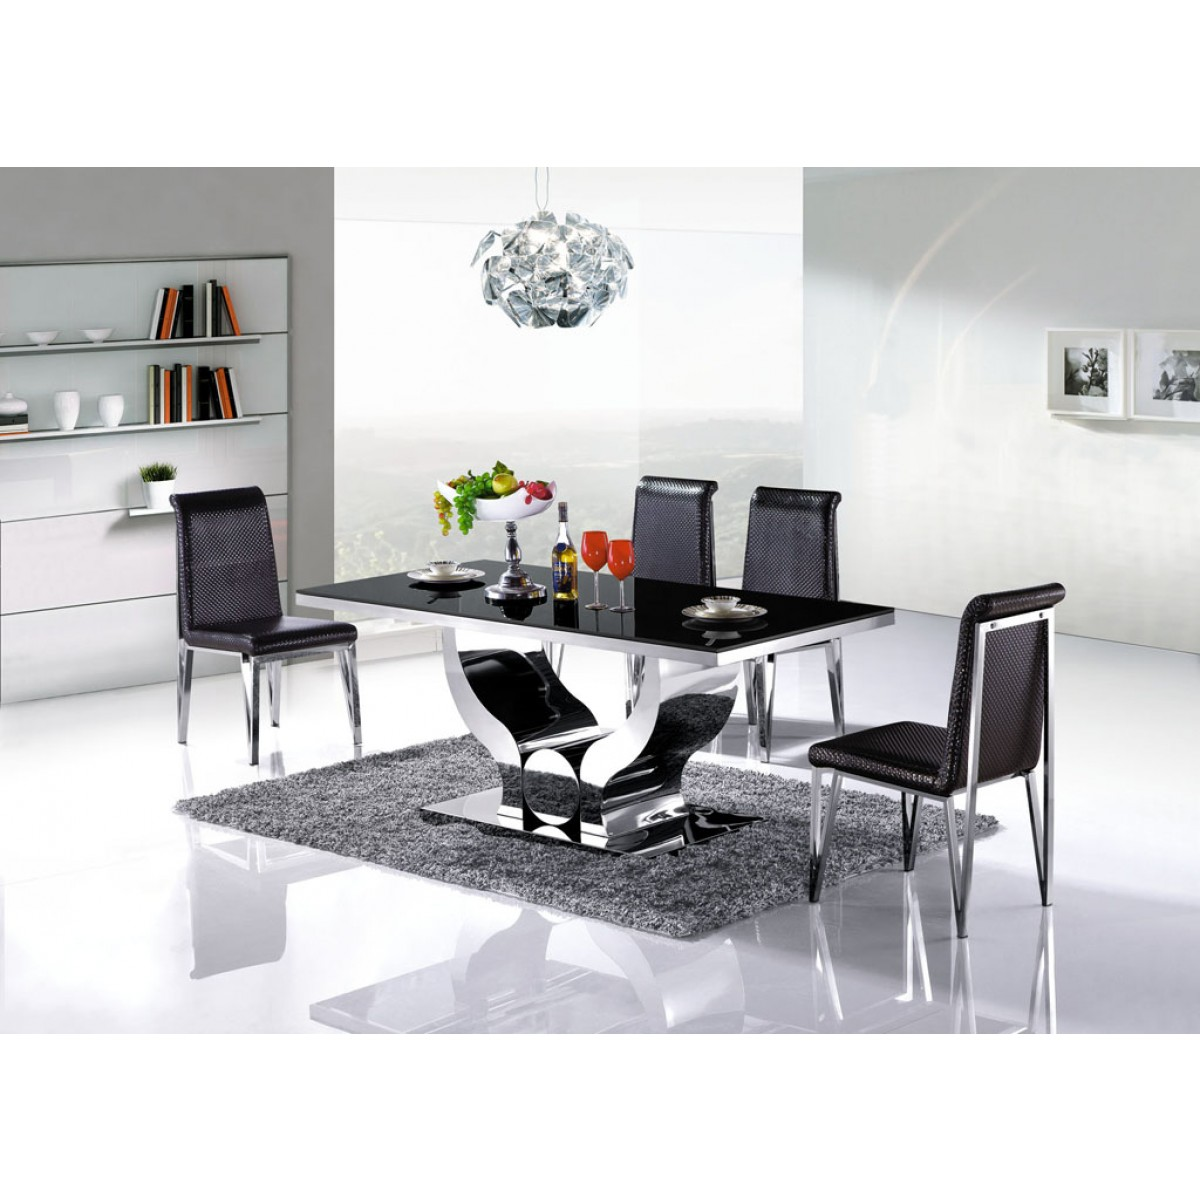 Table de salle manger en inox nova pop for Table salle a manger design